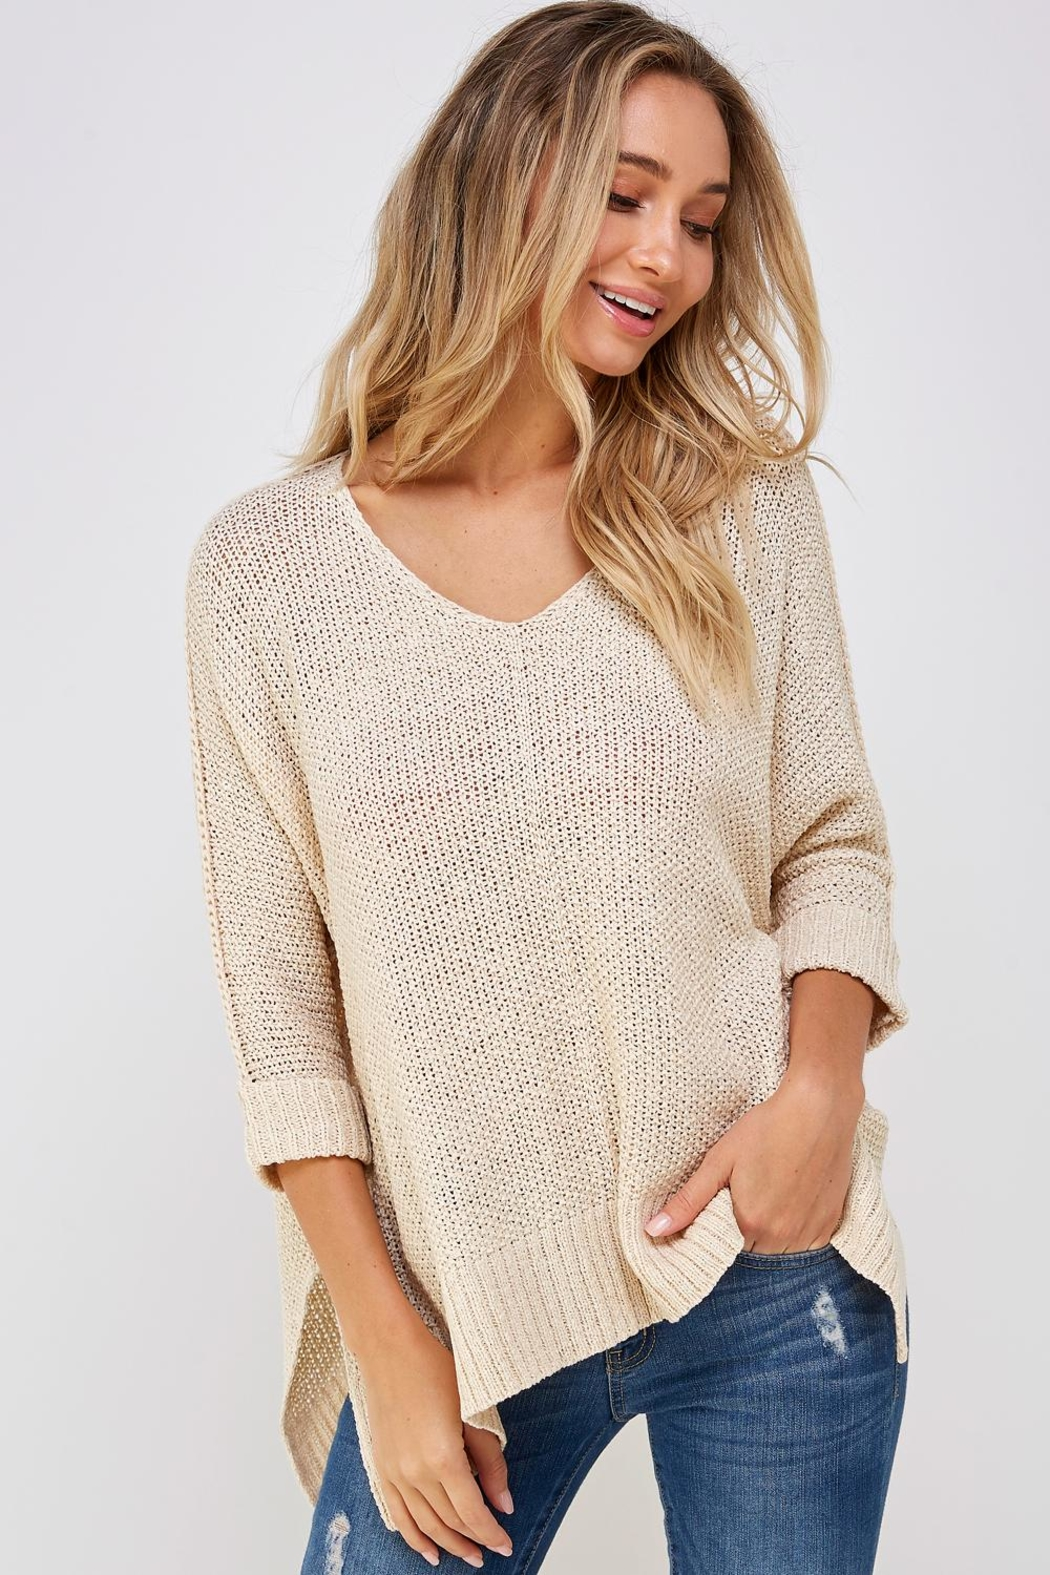 She + Sky High-Lo Knit Sweater - Main Image